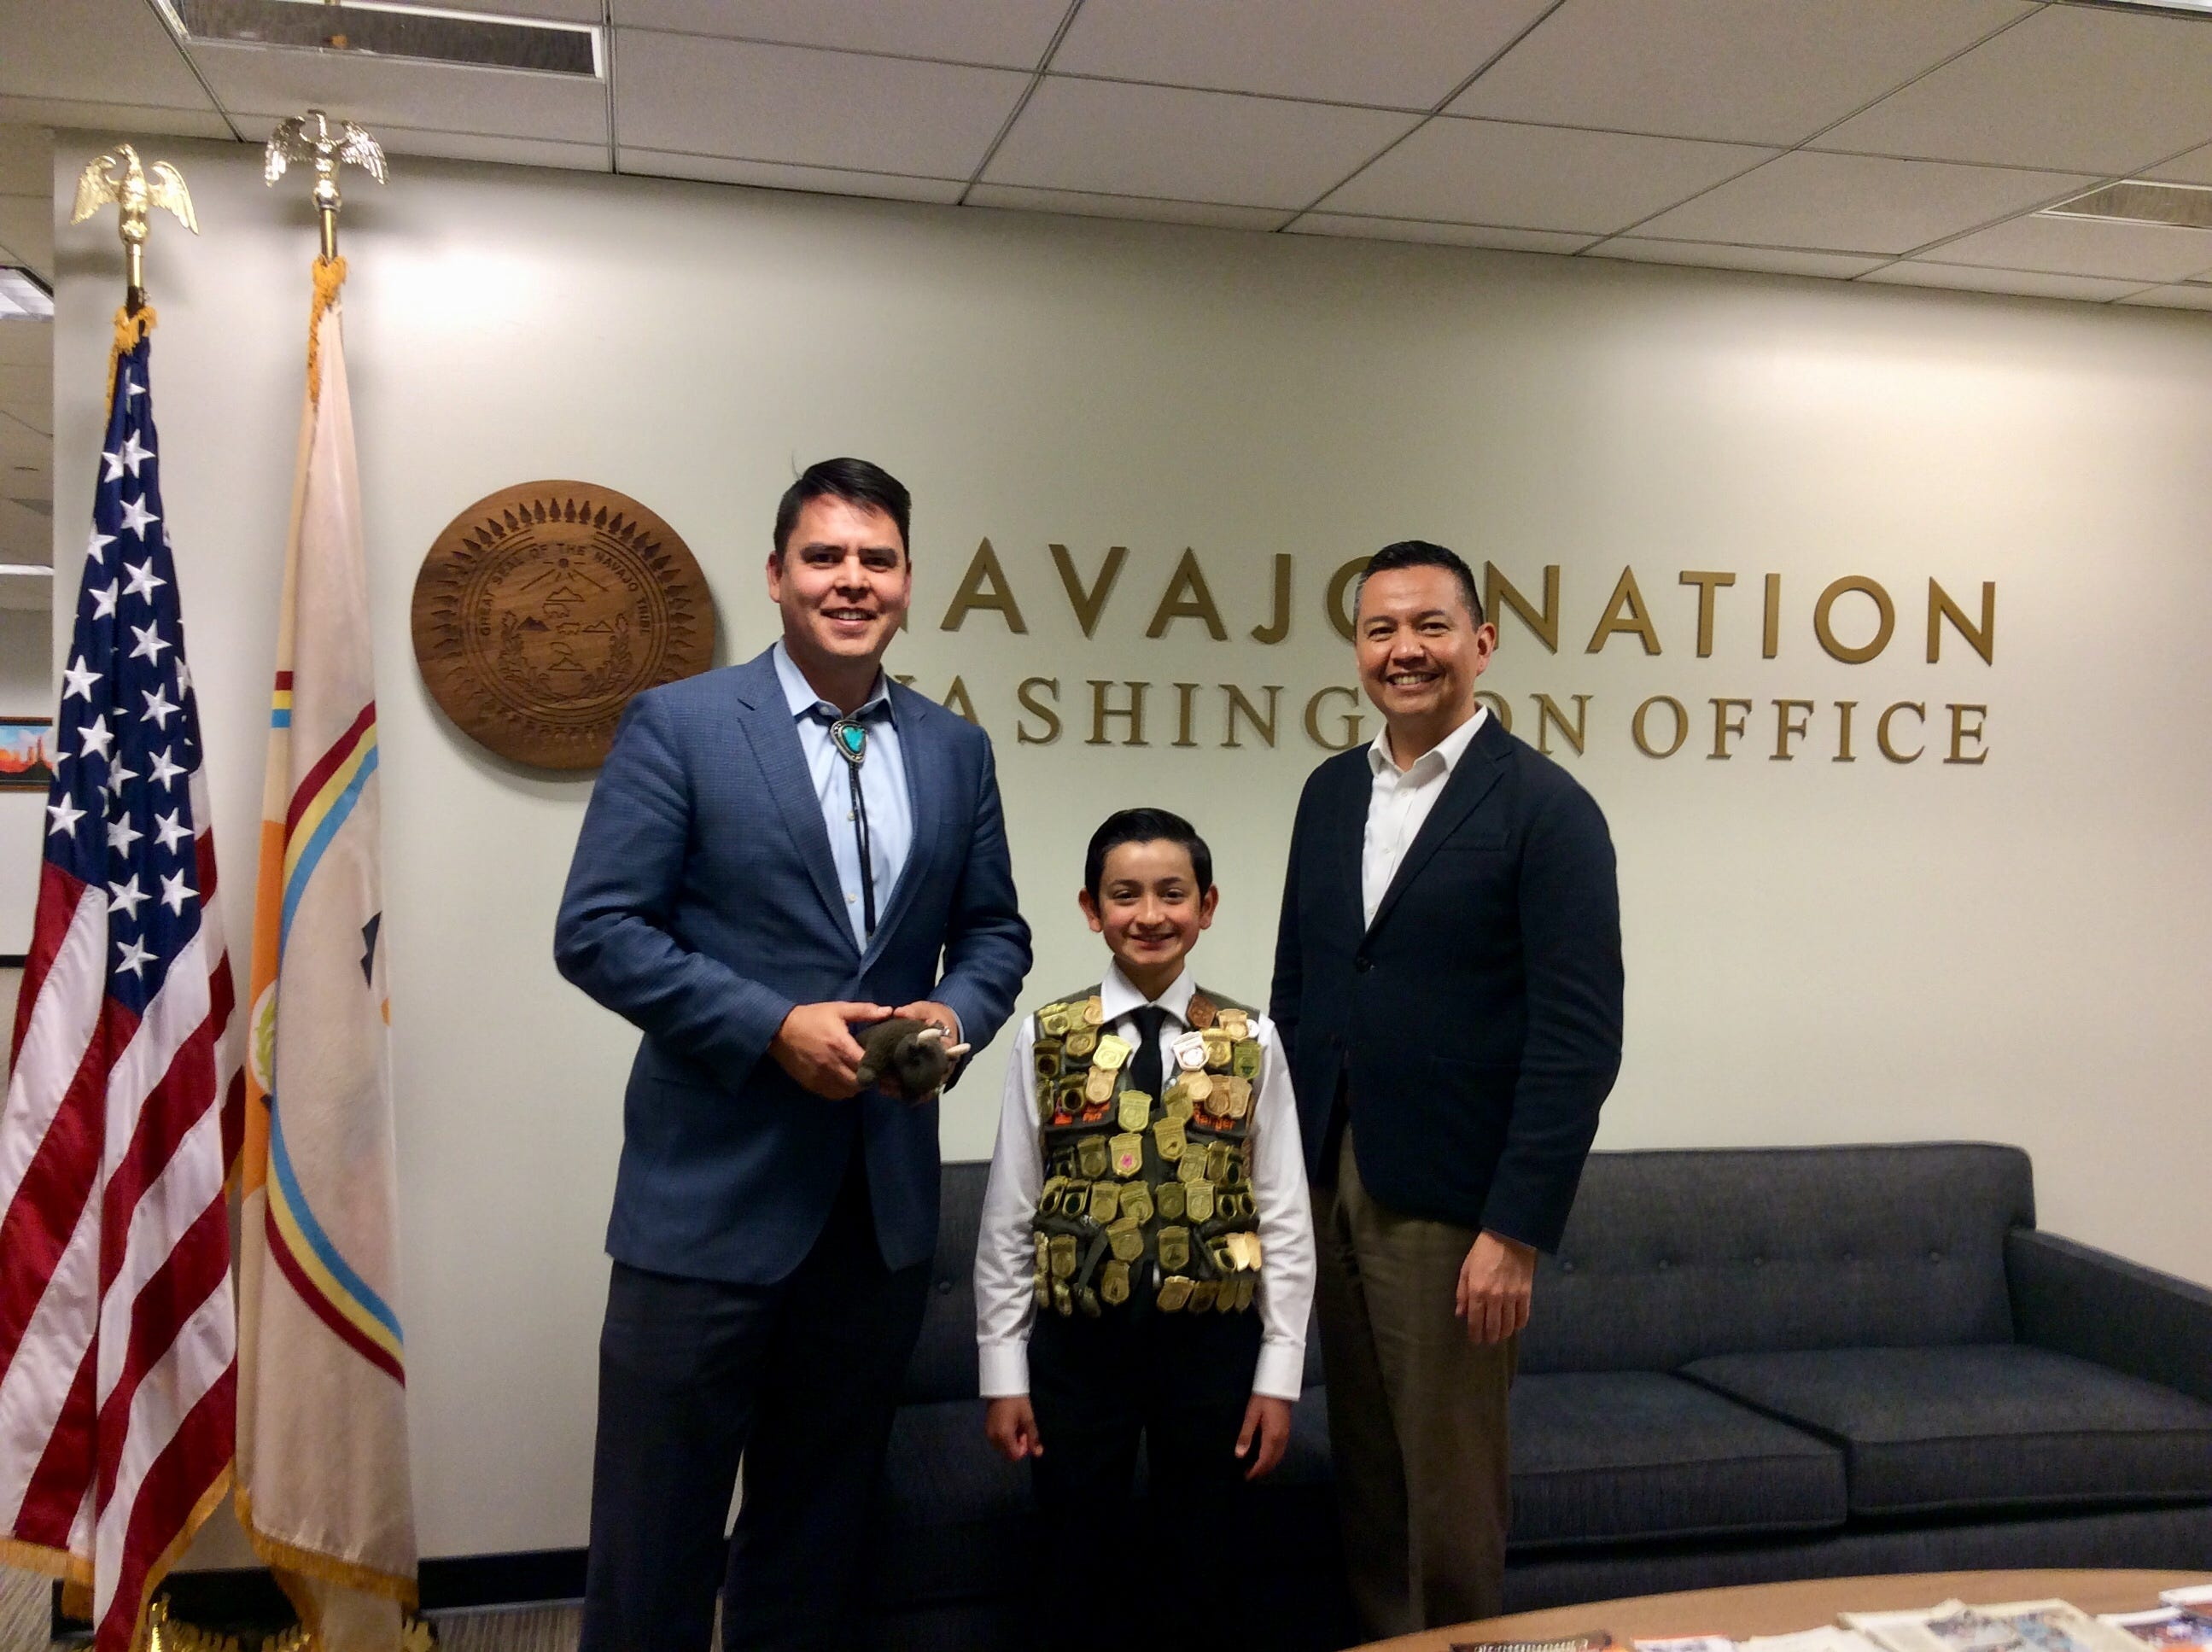 Bryan Wilson, 12, making the rounds in Washington, D.C., including meeting with Navajo Nation council members.